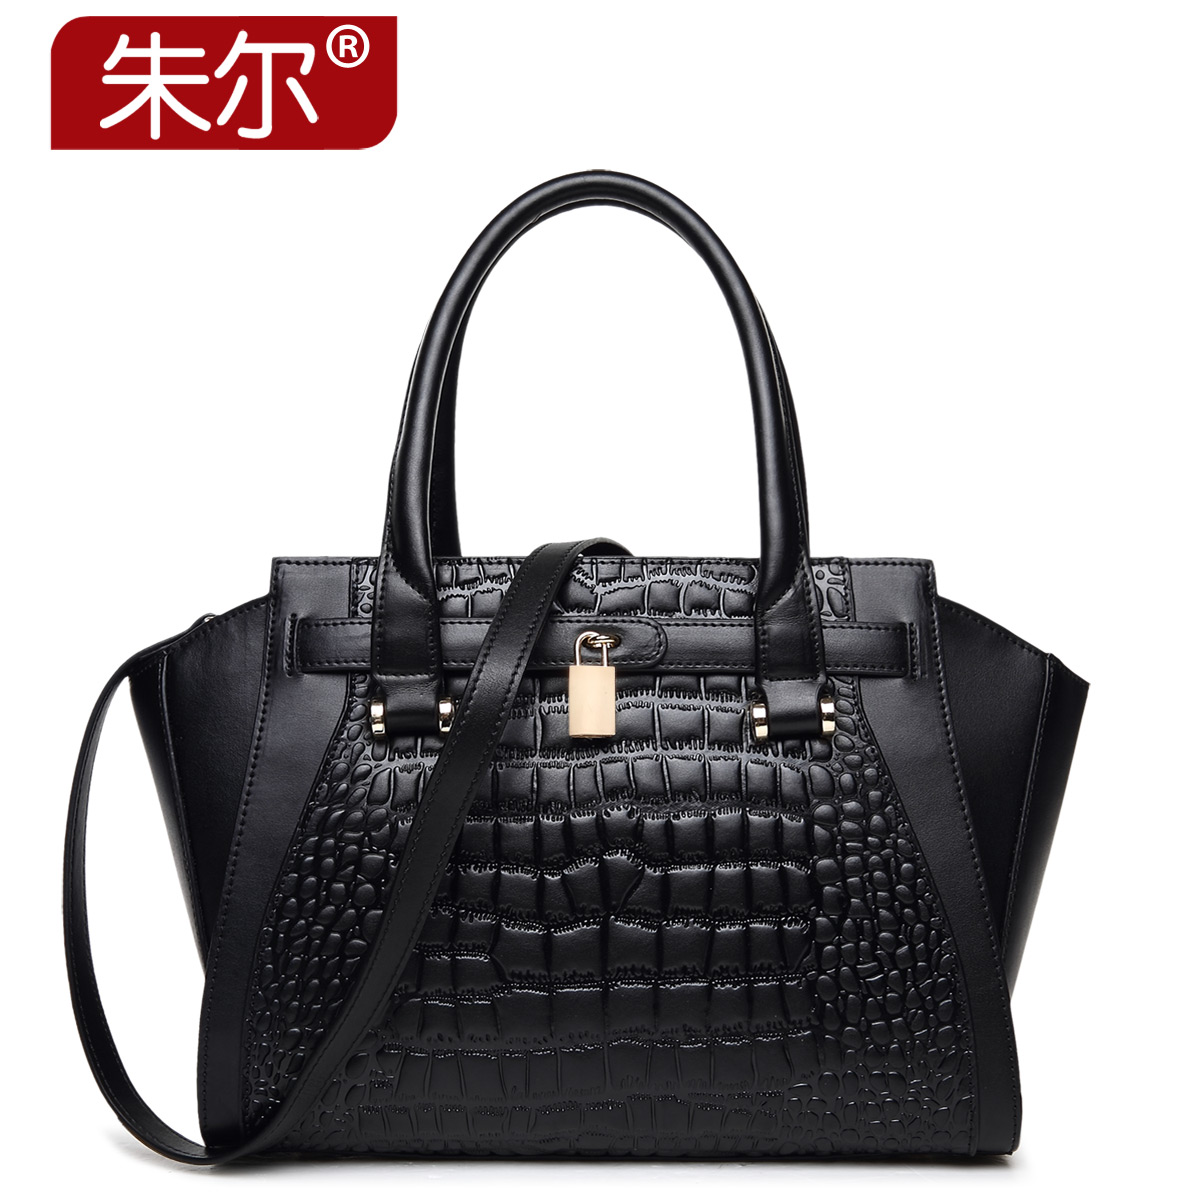 2015 for Crocodile women's cowhide handbag genuine leather fashion one shoulder fashion handbag women's bags autumn bag female